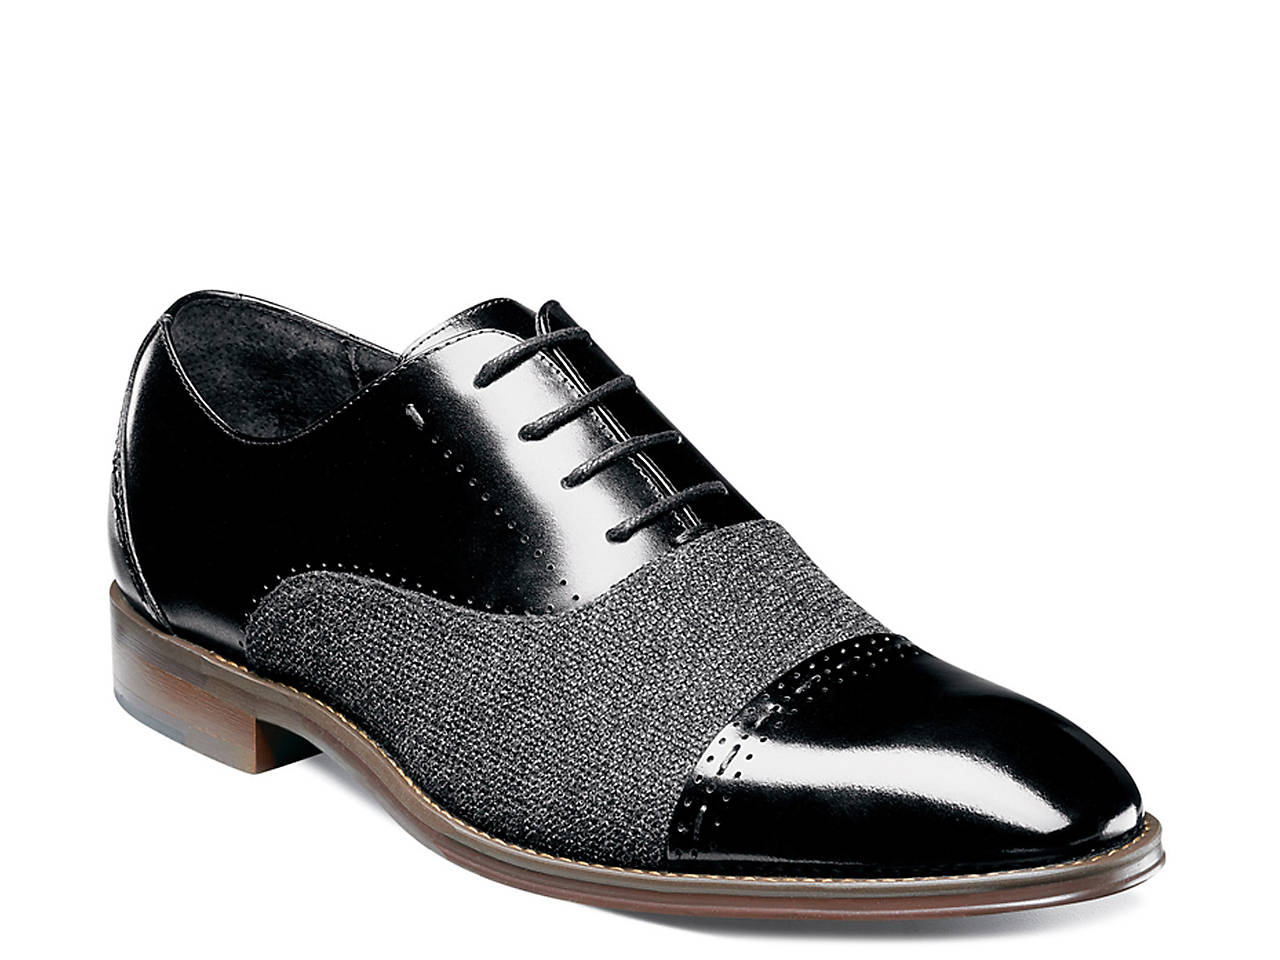 3dea2d49ca5 Barrington Cap Toe Oxford